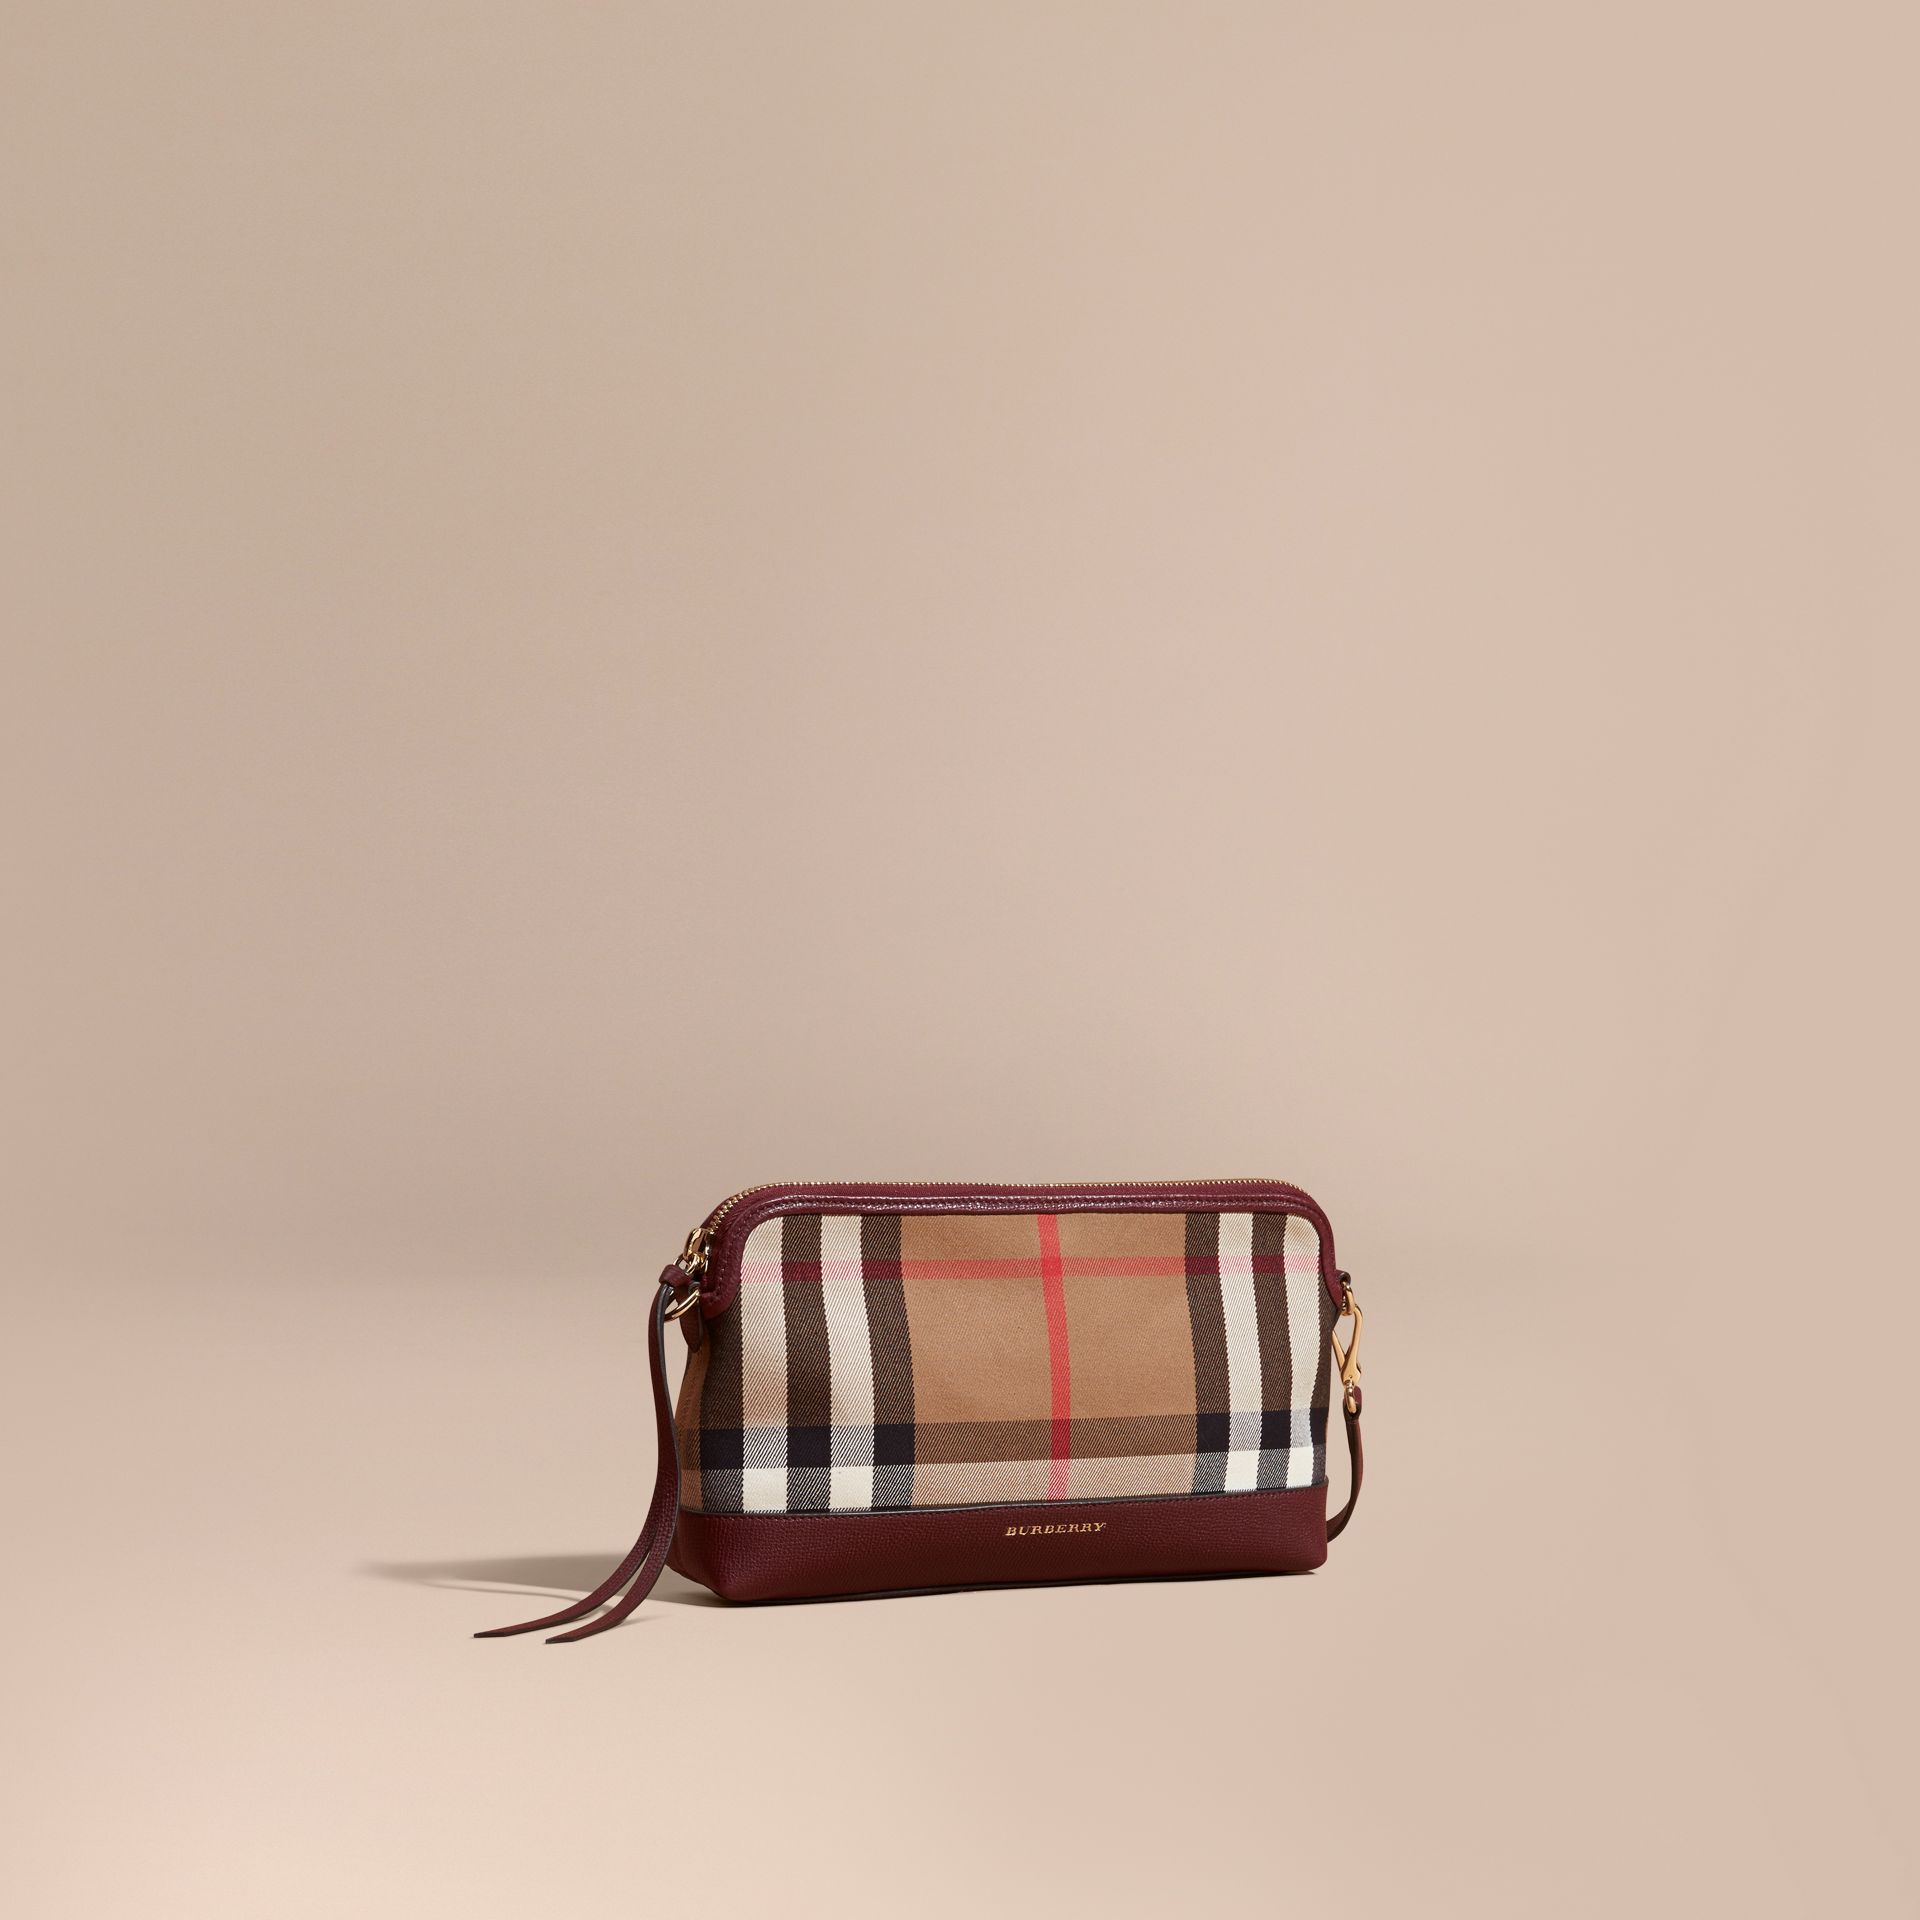 Mahogany red House Check and Leather Clutch Bag Mahogany Red - gallery image 1